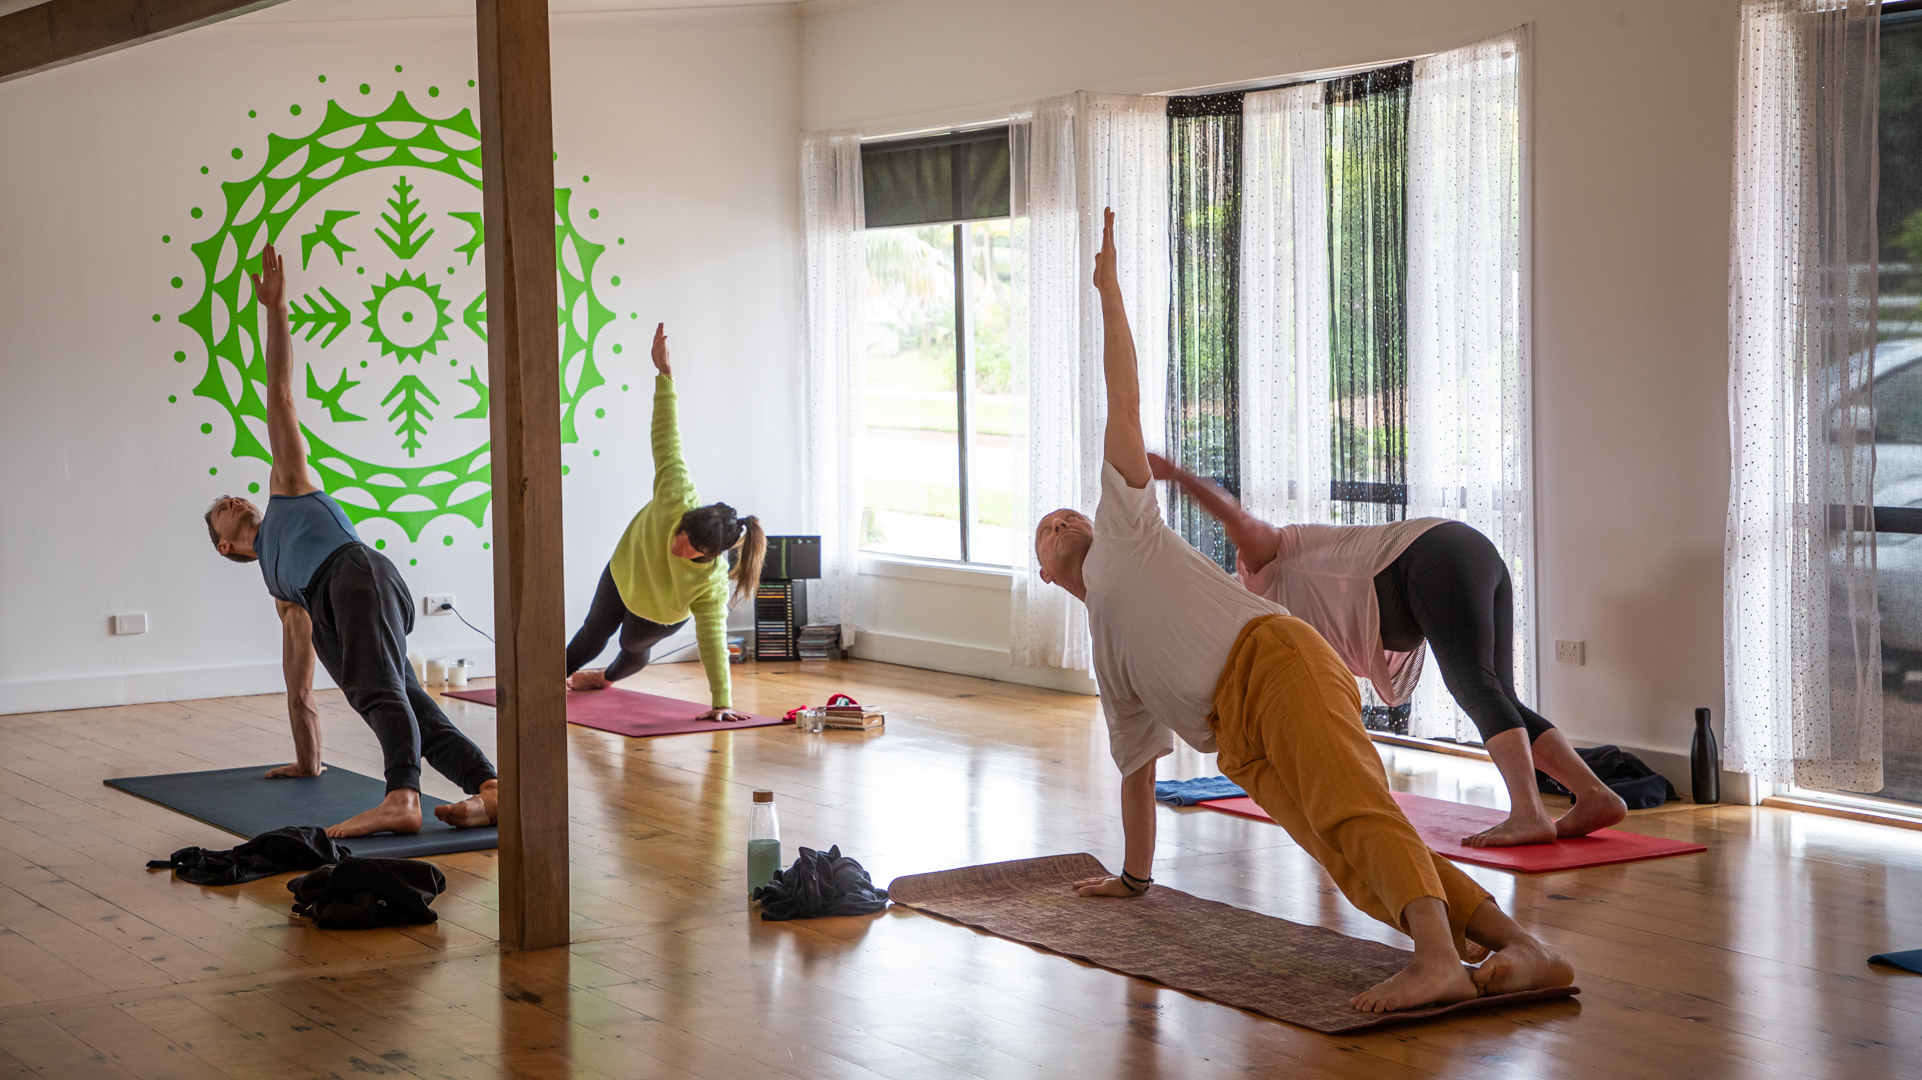 Group of young travelers relaxing and enjoying a yoga class in a studio. They are holding a side plank.